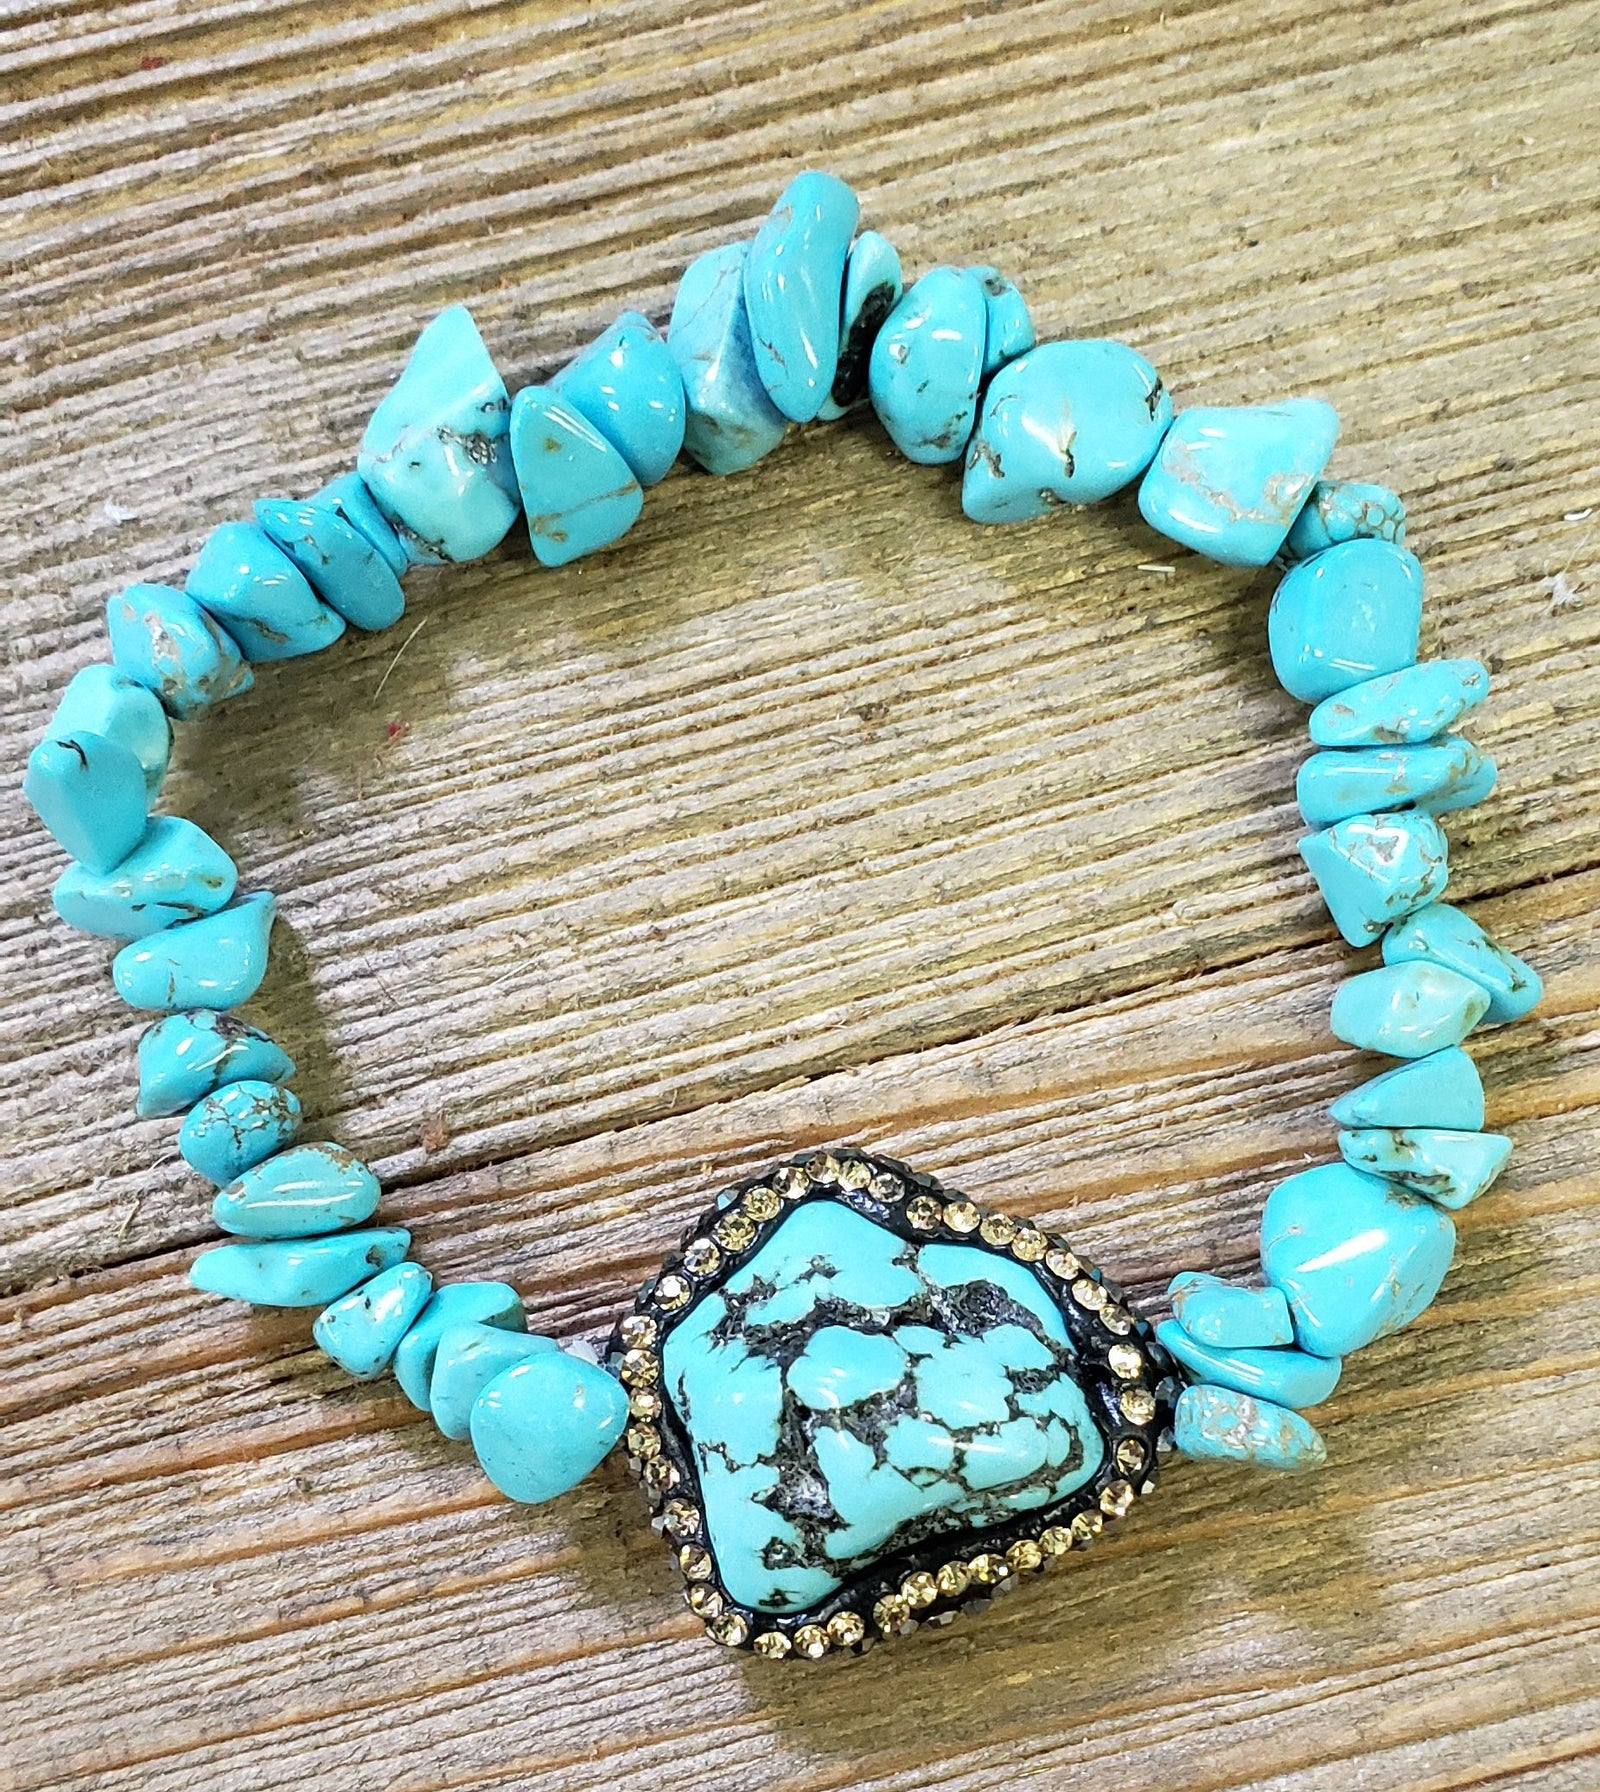 Turquoise Beaded Pave Stretch Bracelet